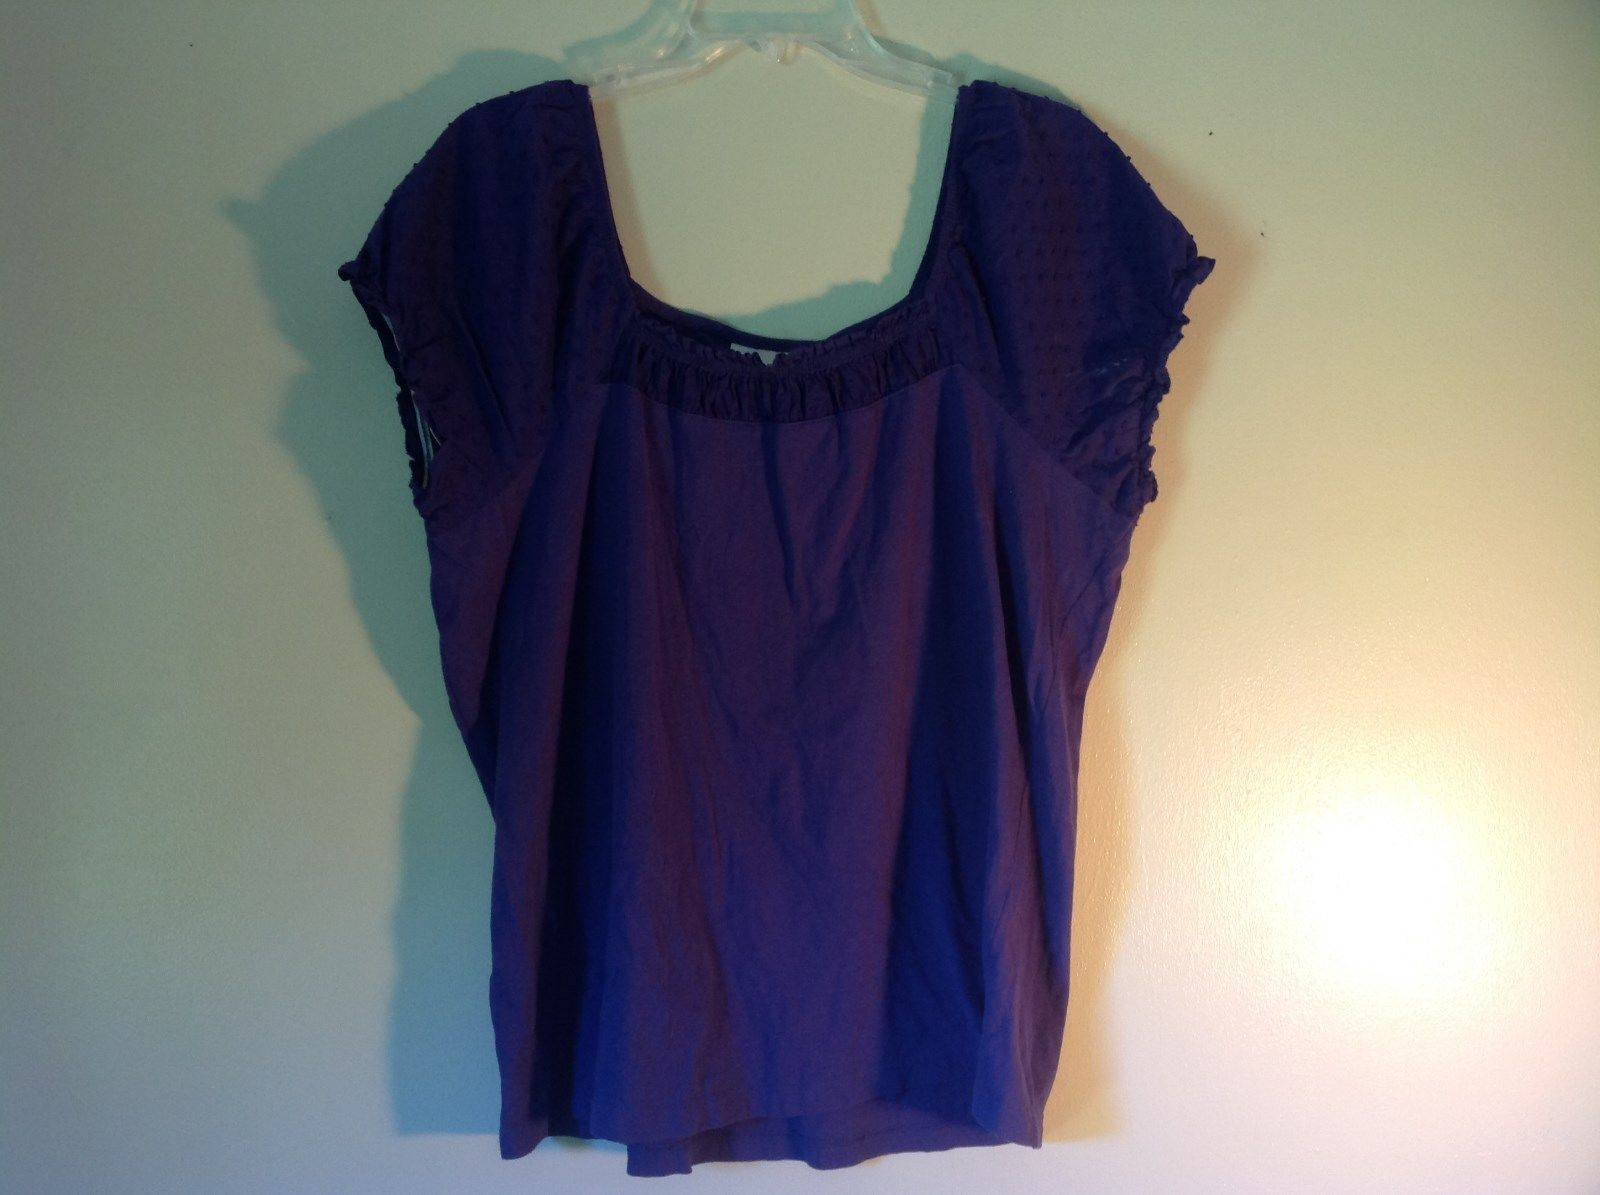 Purple Short Sleeve Shirt by Avenue Size 14 to 16 Elastic Sleeve Ends